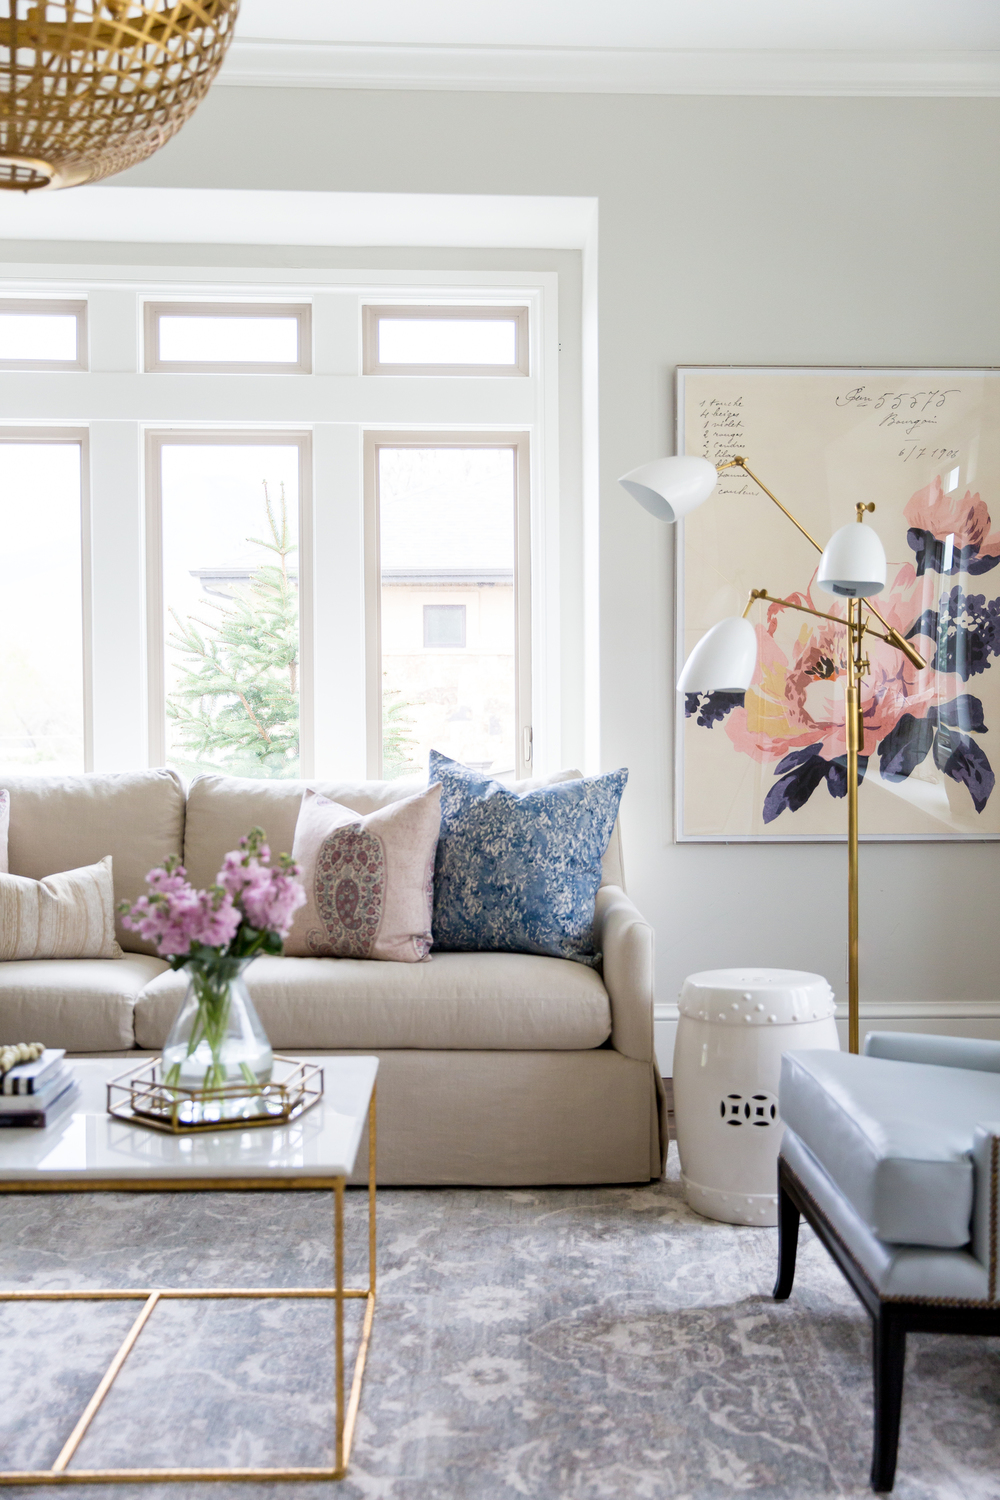 Large+Scale+Floral+Art+and+Modern+Lamp+||+Studio+McGee.jpg